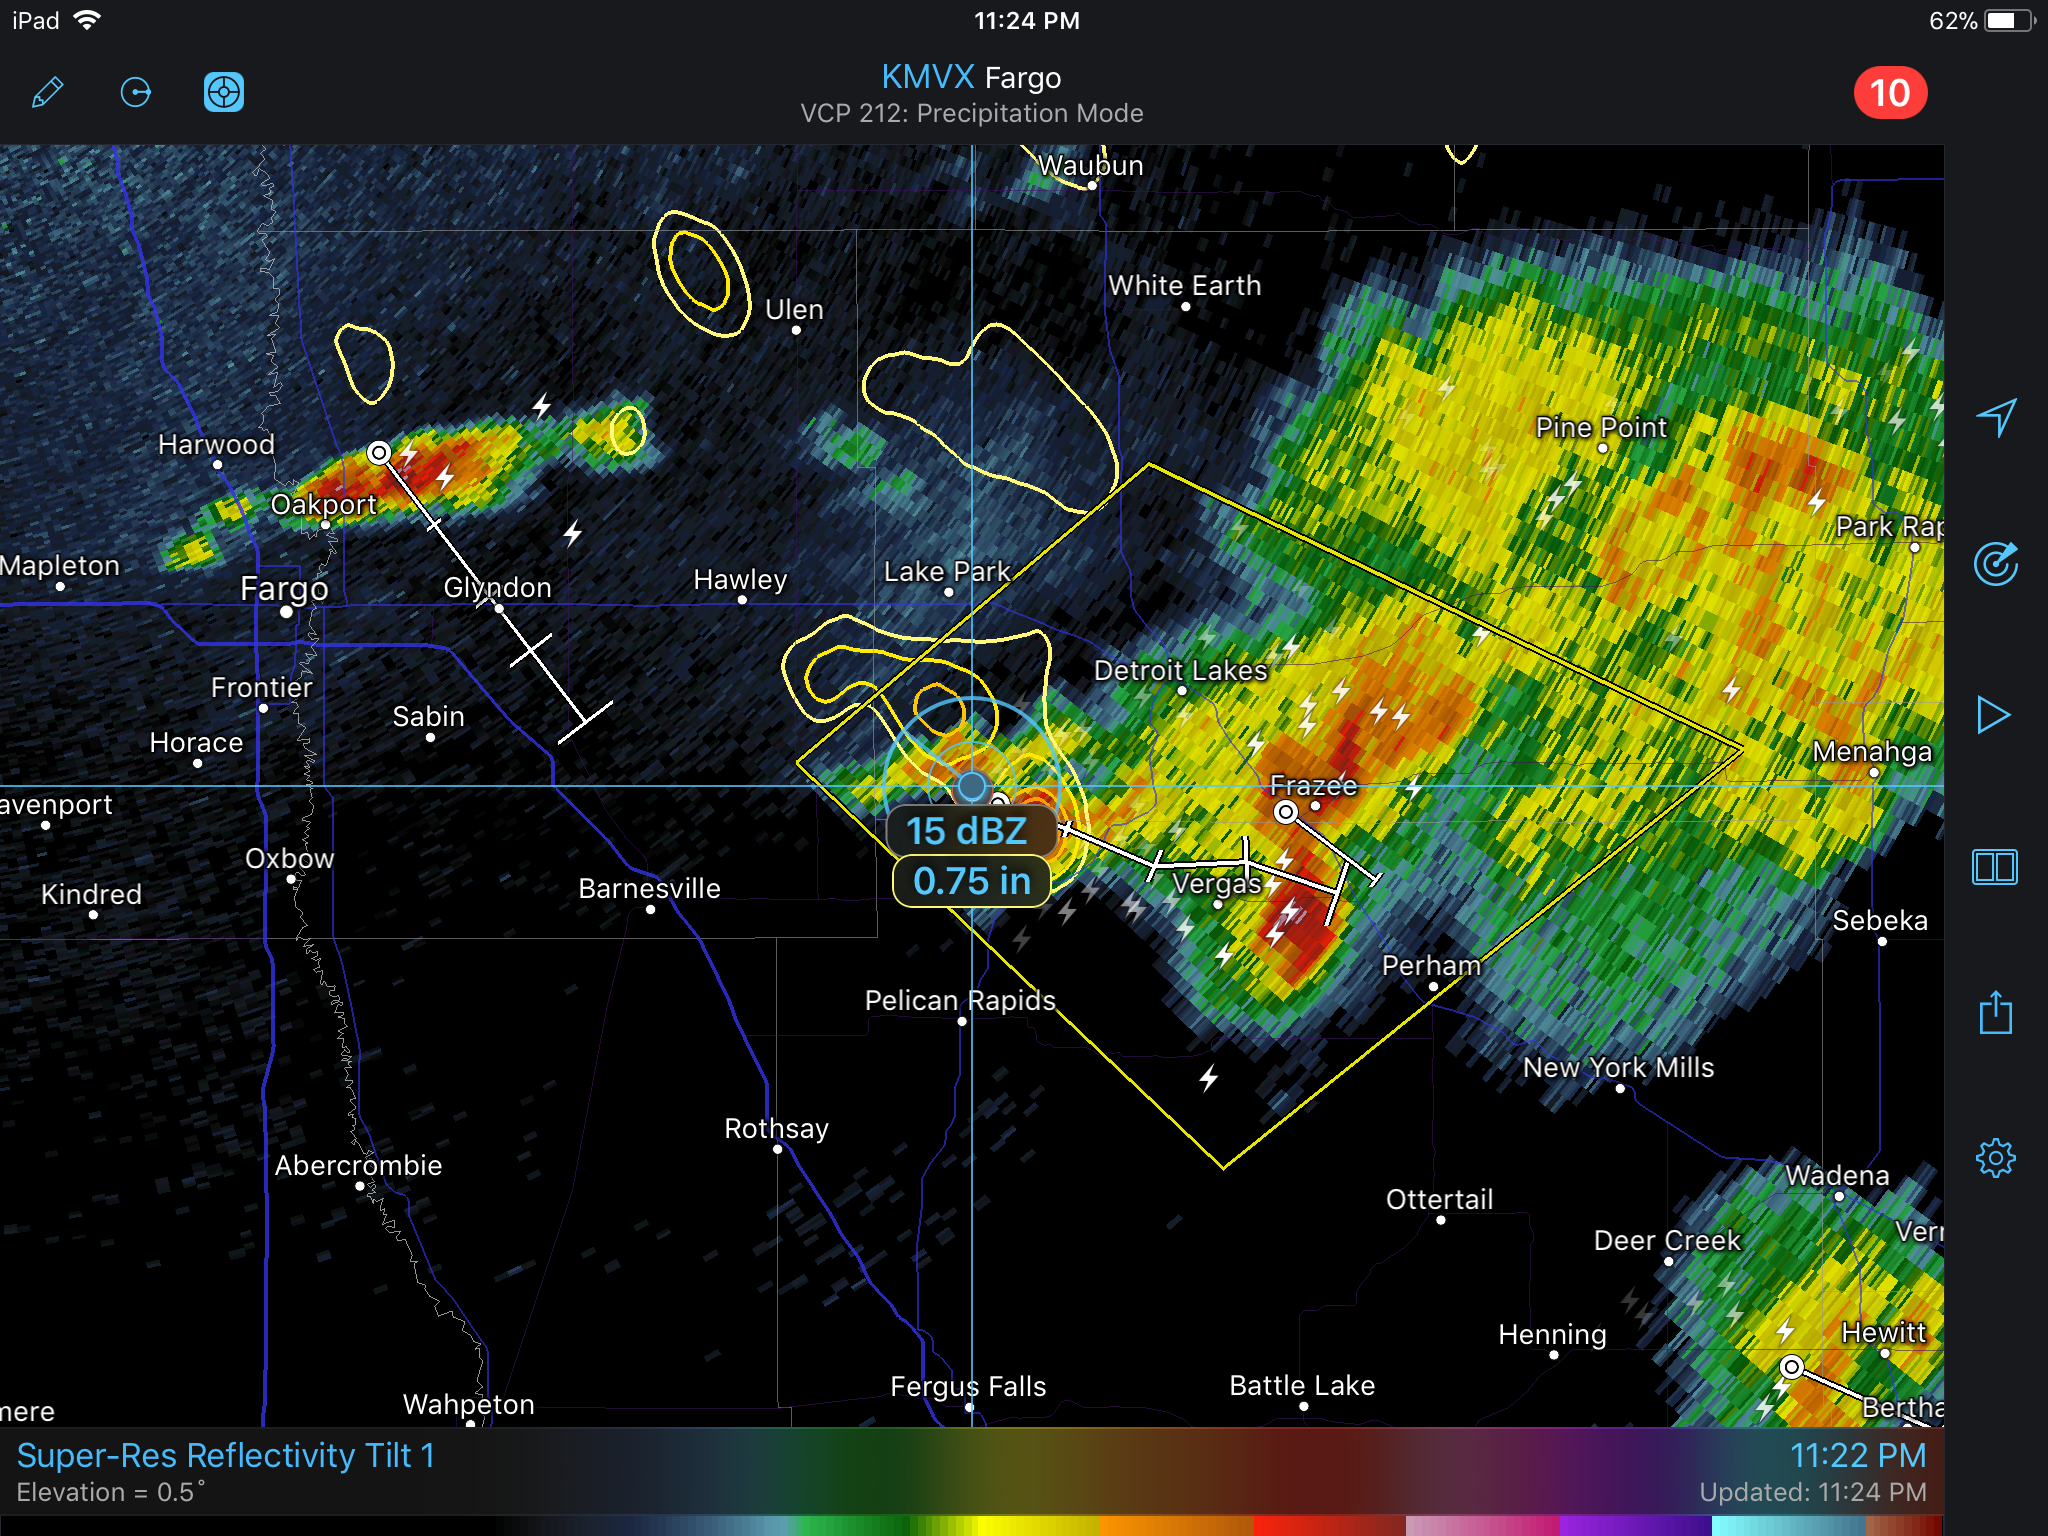 RadarScope: From Outlooks to Warnings, v3.8 Has it All